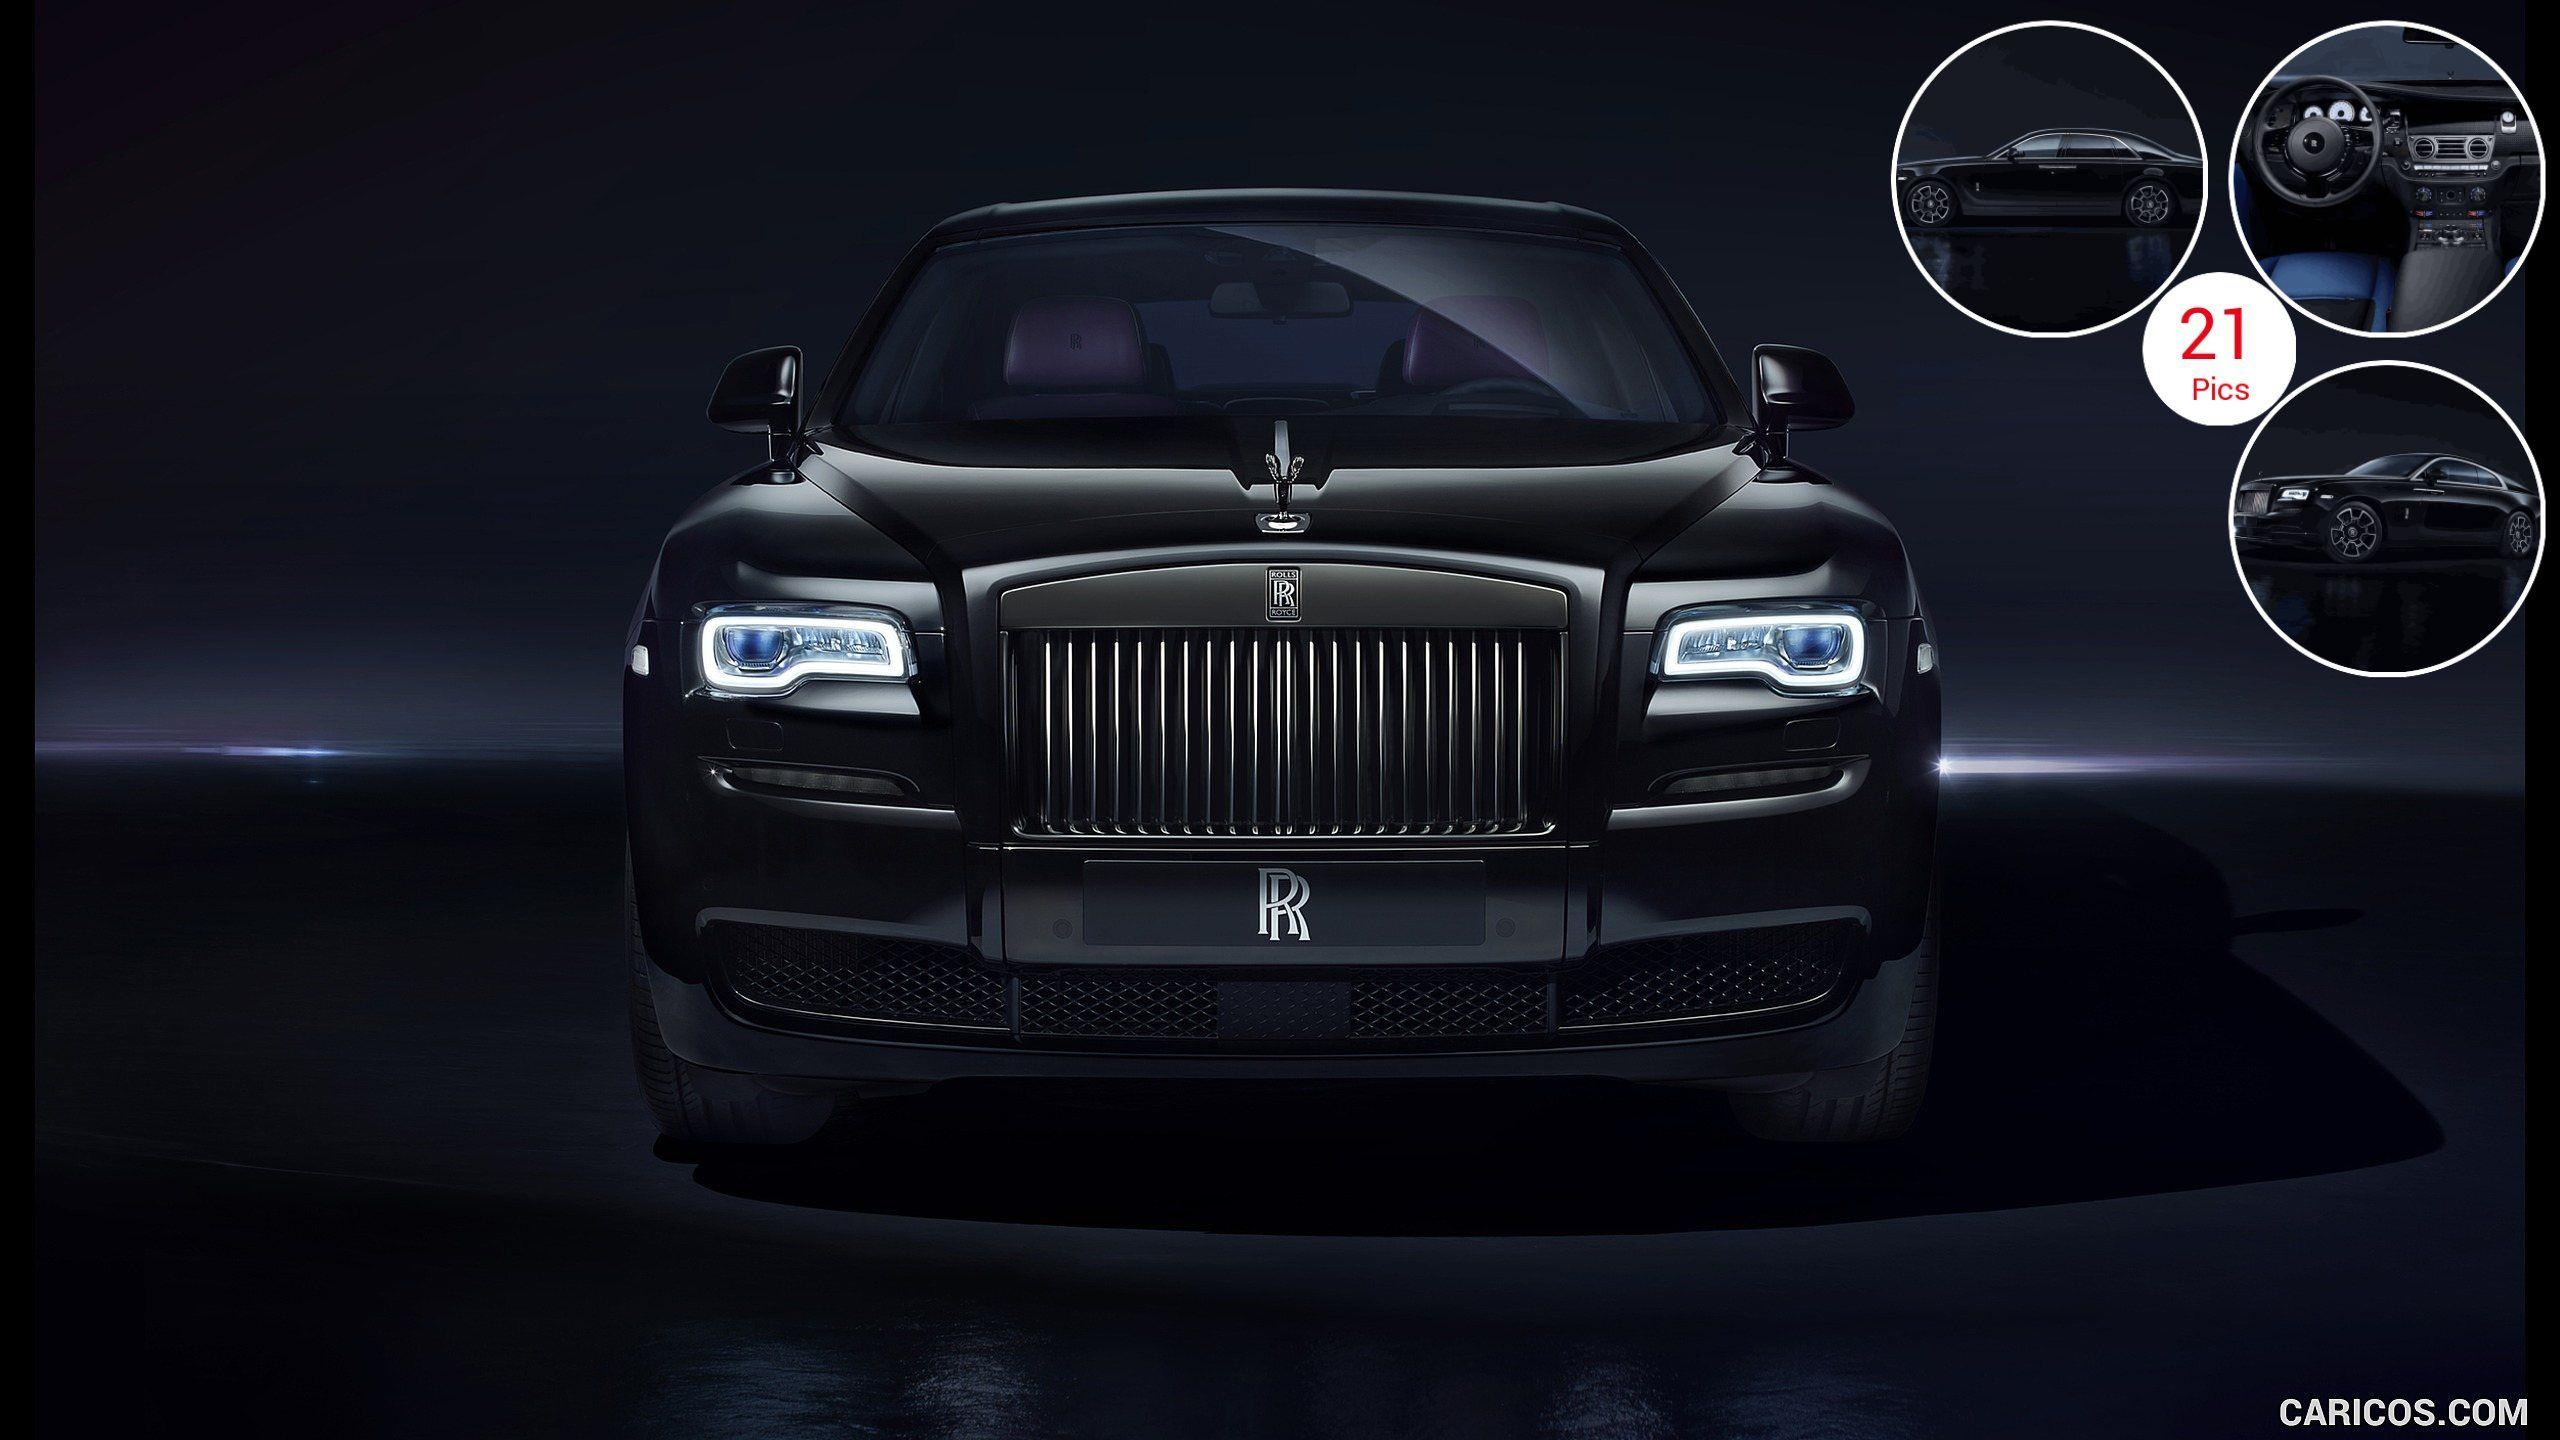 2016 Rolls-Royce Ghost Black Badge - Front | HD Wallpaper #13